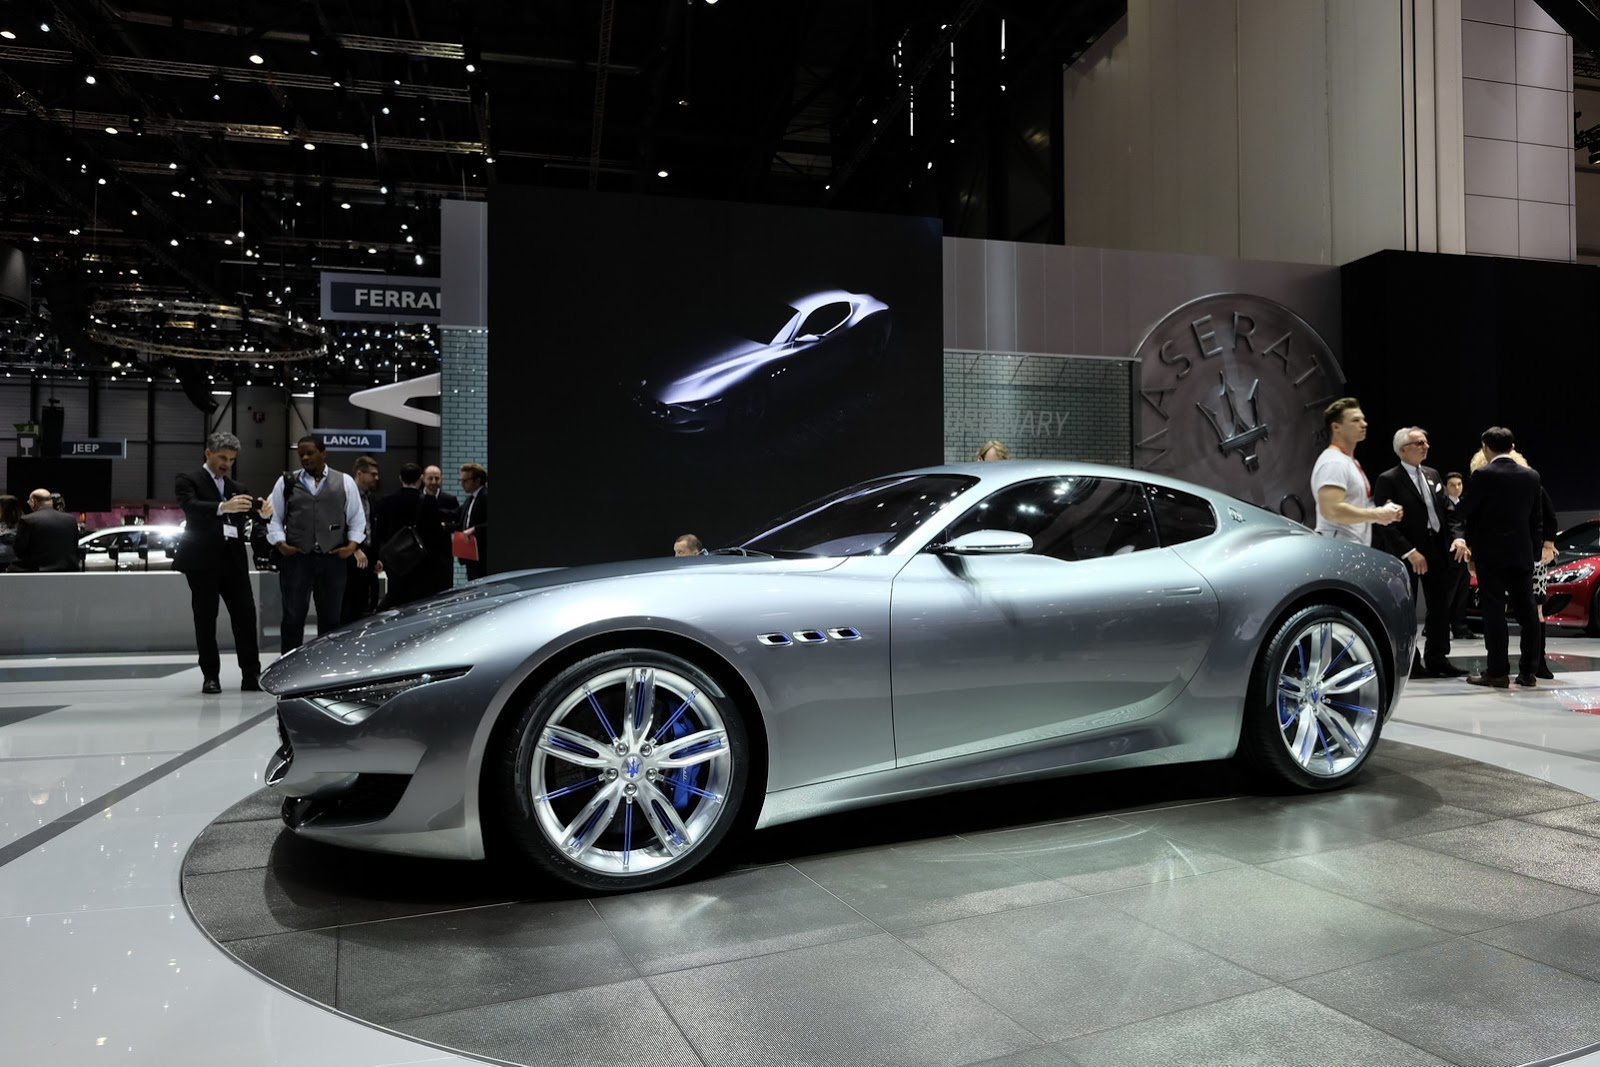 maserati granturismo is now first priority alfieri project in doubt carscoops. Black Bedroom Furniture Sets. Home Design Ideas